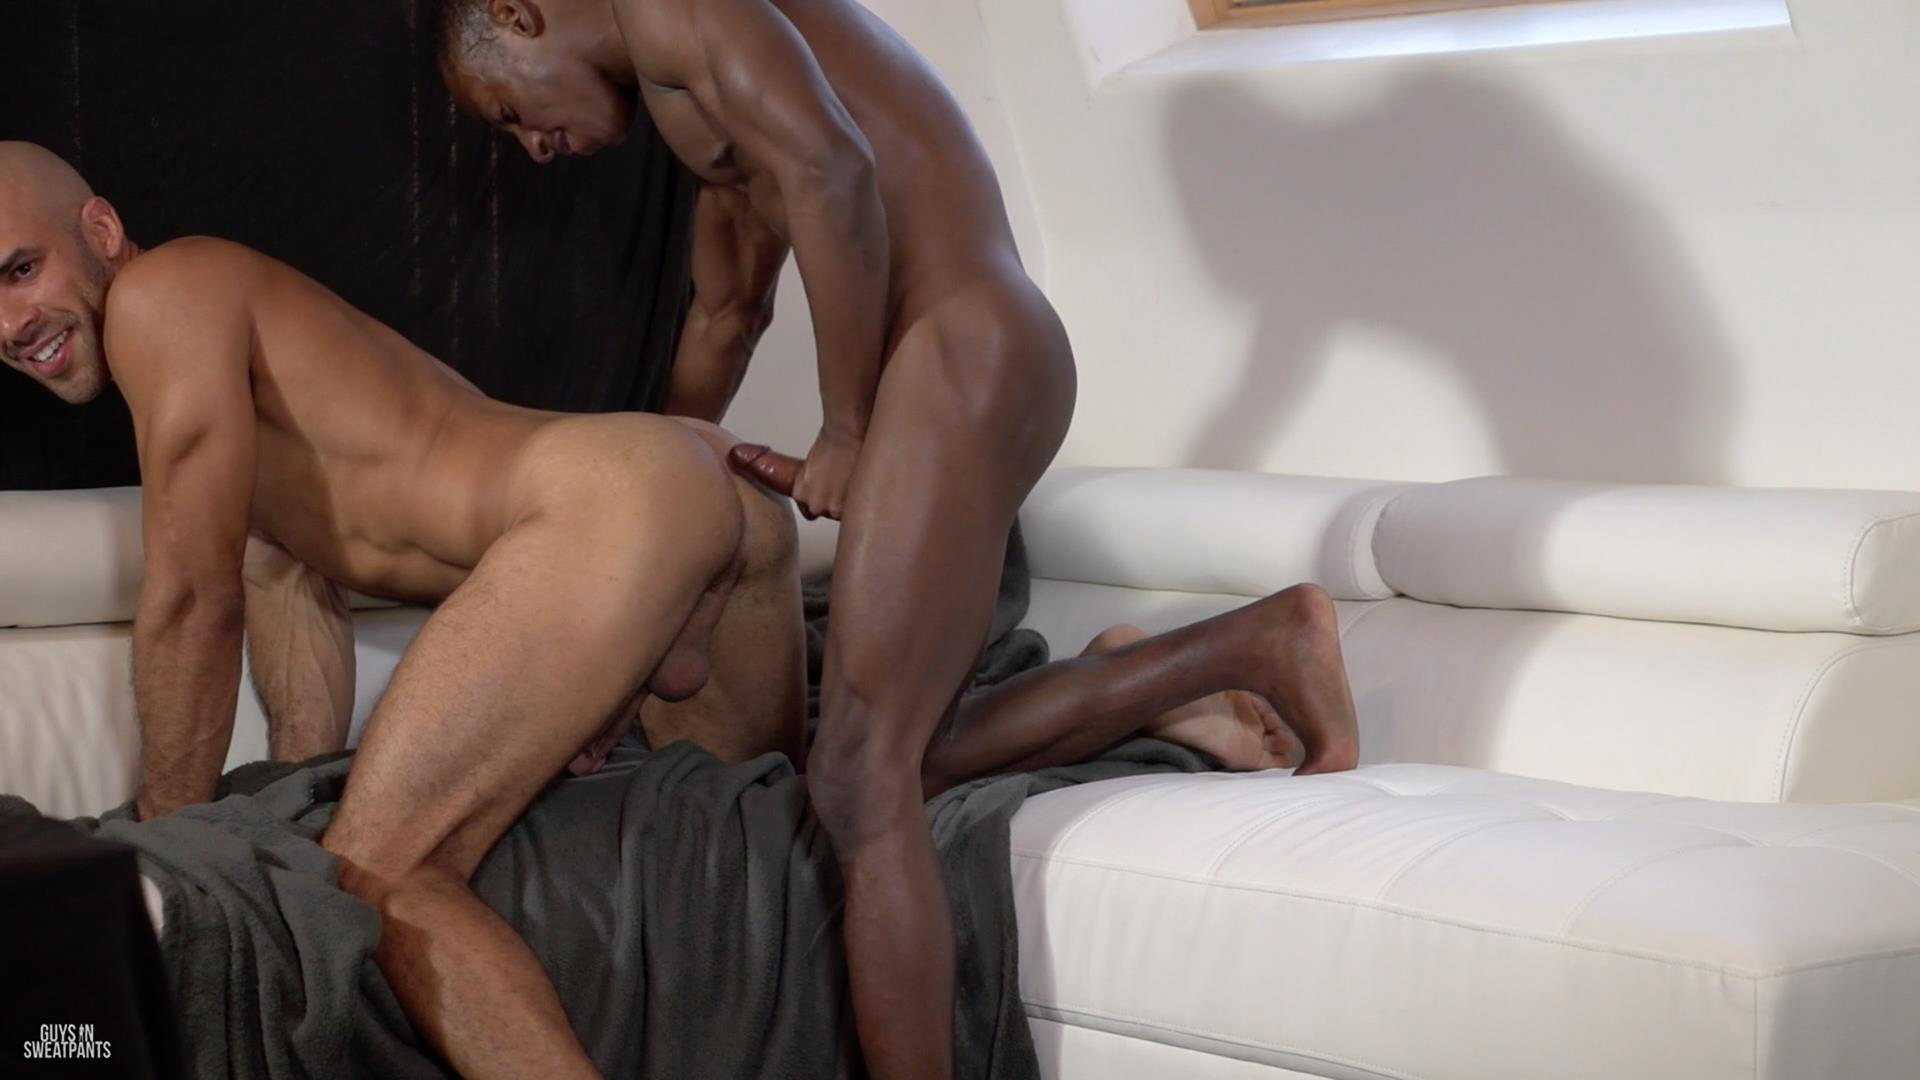 Guys-in-Sweatpants-Austin-Wilde-and-Liam-Cyber-Bareback-Interracial-Sex-Amateur-Gay-Porn-05 Austin Wilde Takes A Big Black Bareback Cock Up The Ass